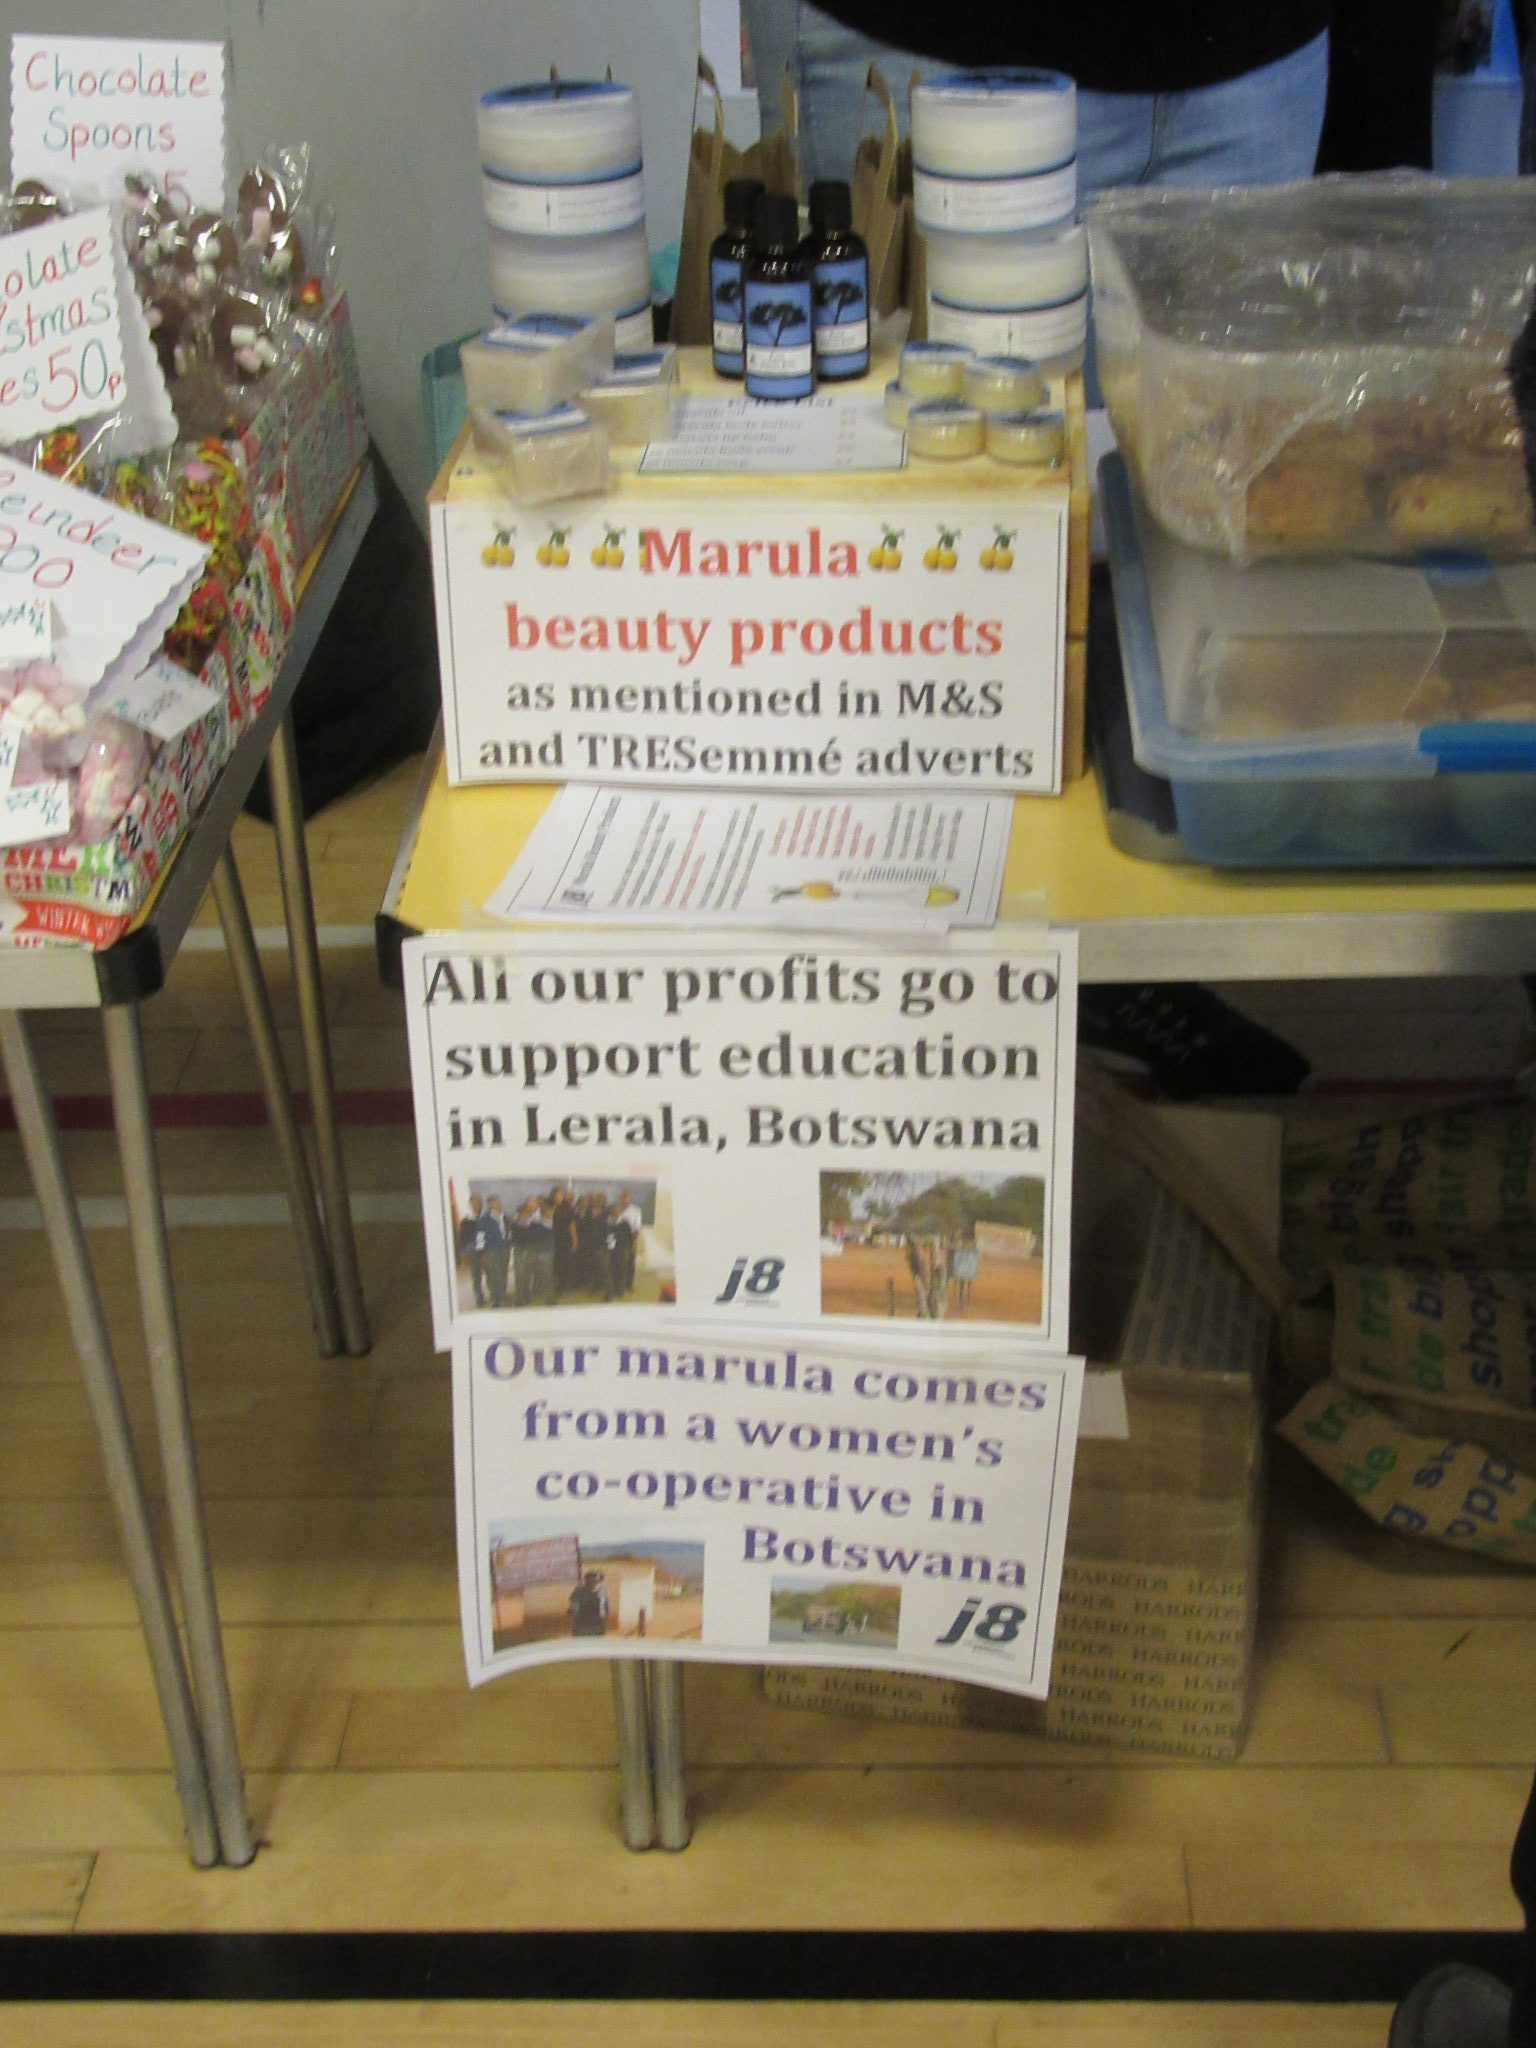 Selling  marula  products  from  Botswana  as  our  social  enterprise